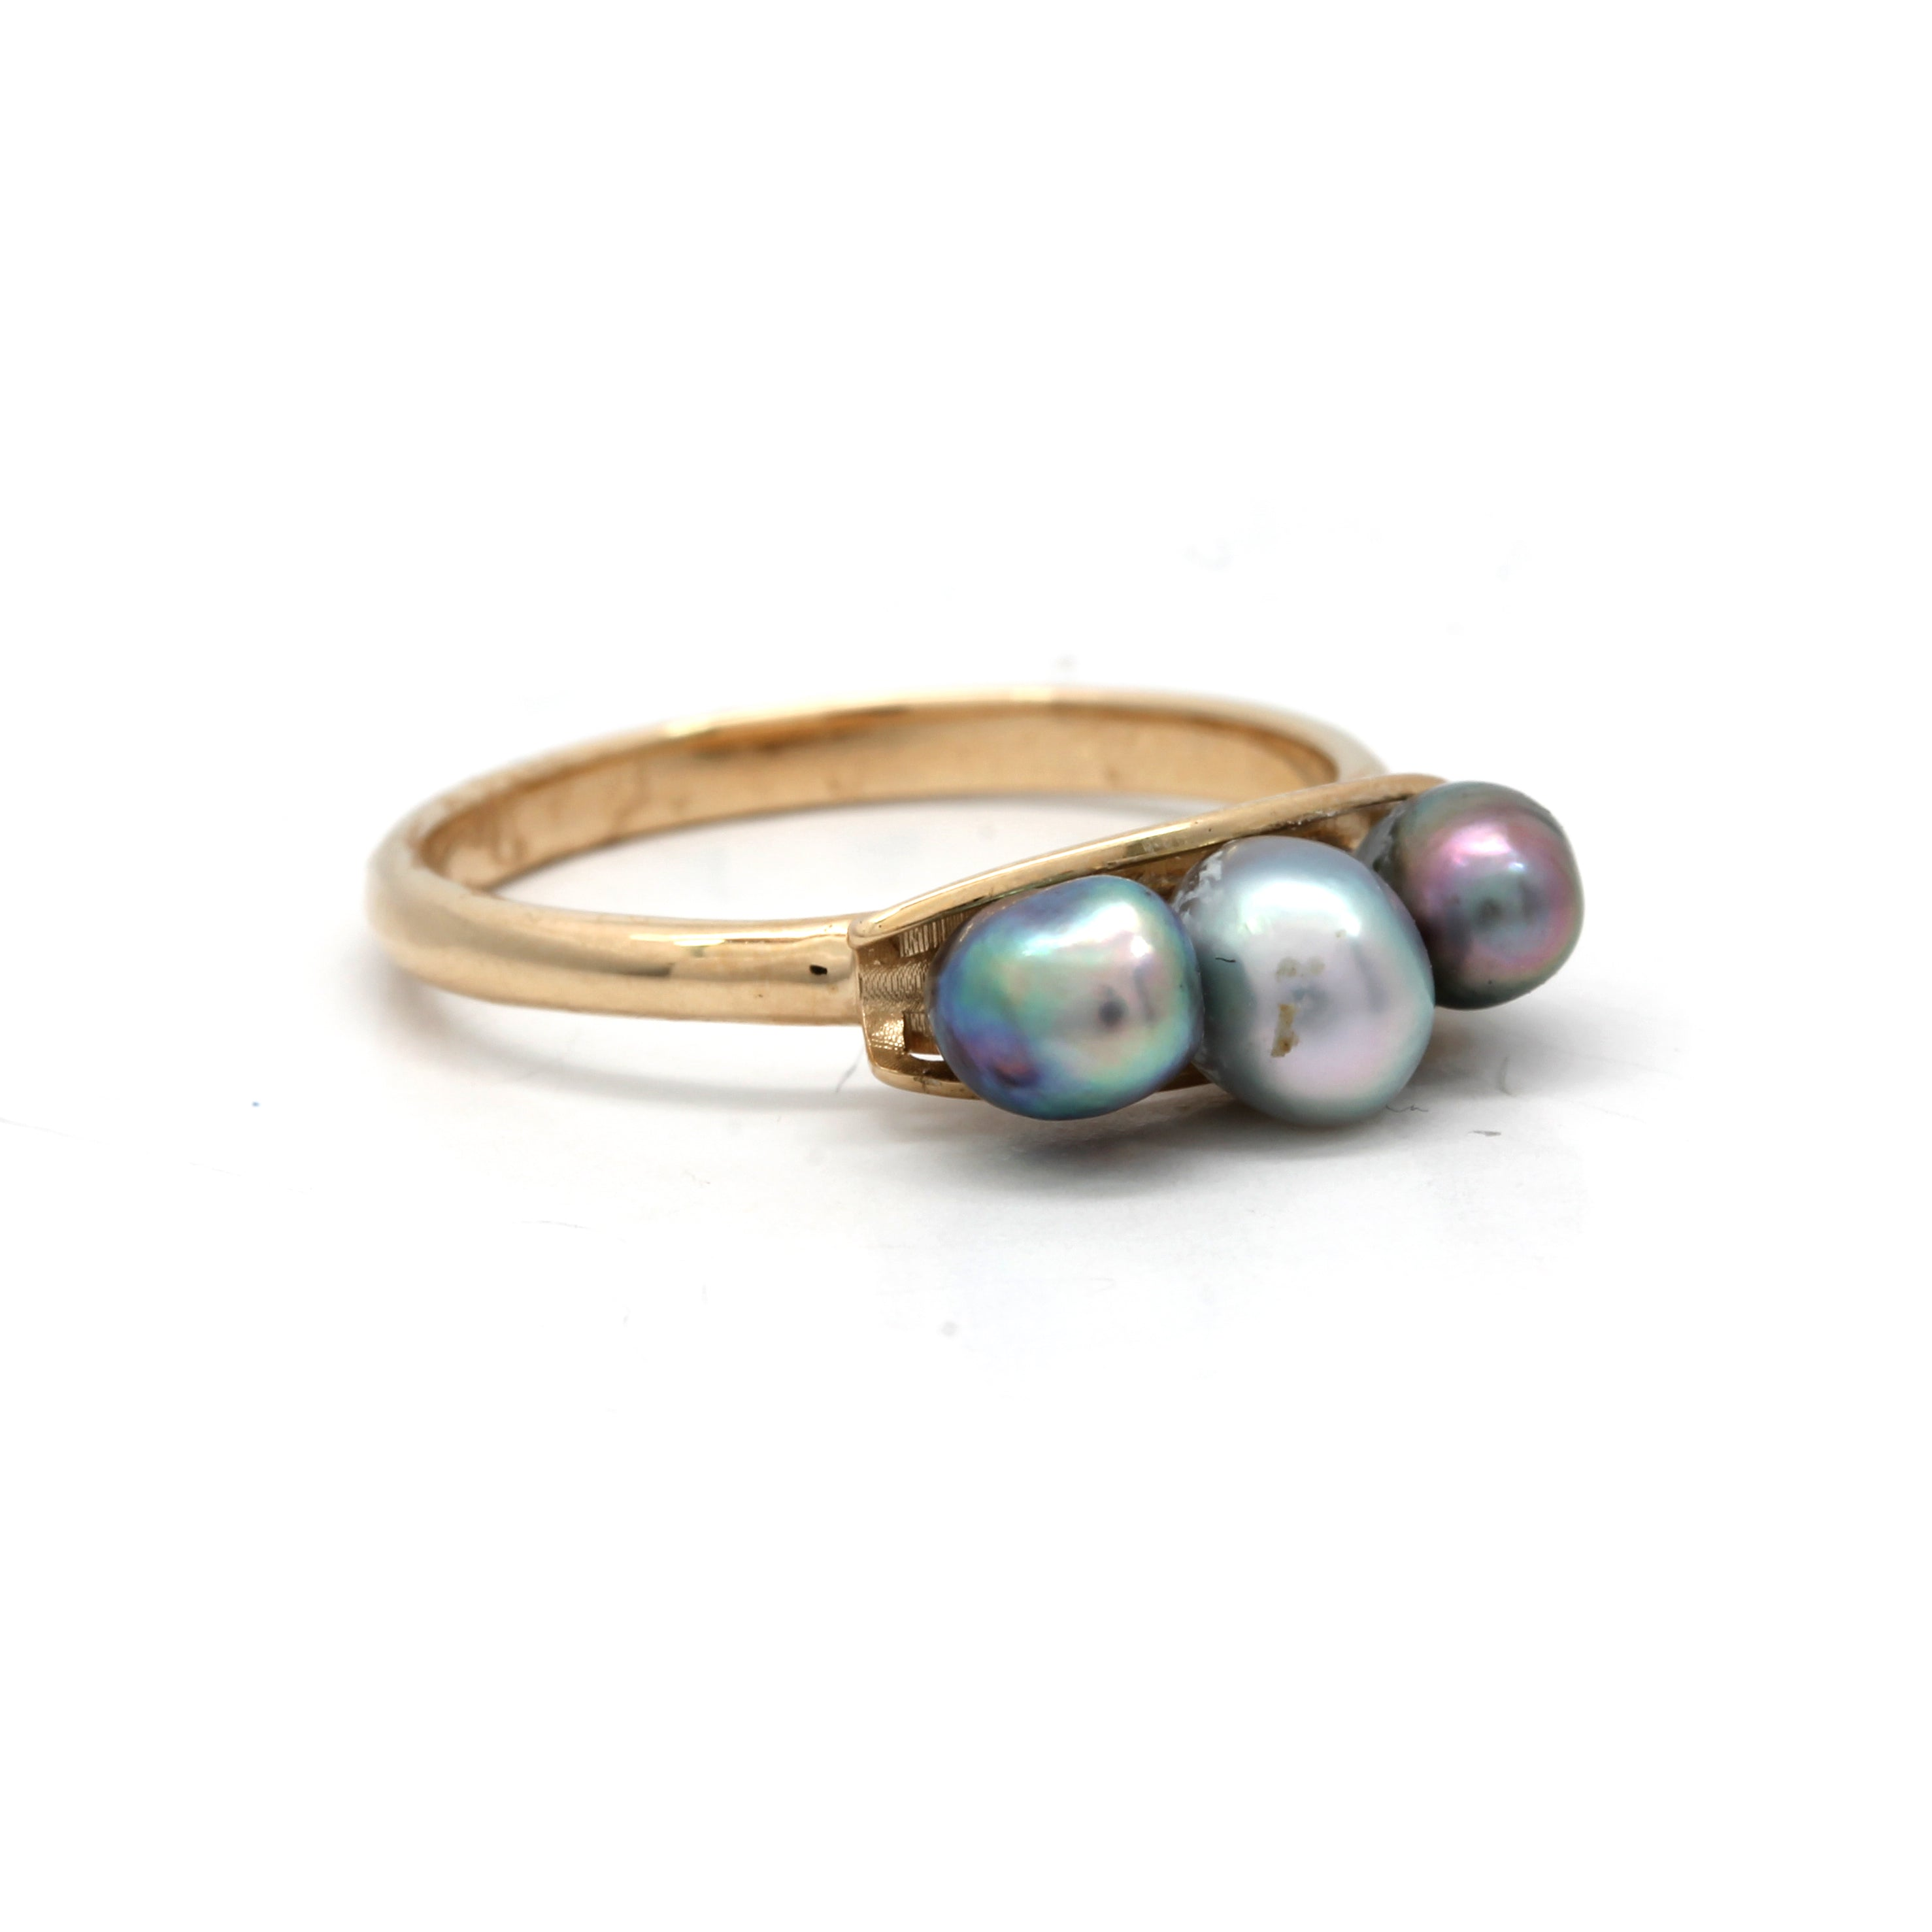 14K Gold Ring with 3 Cortez Keshi Pearls